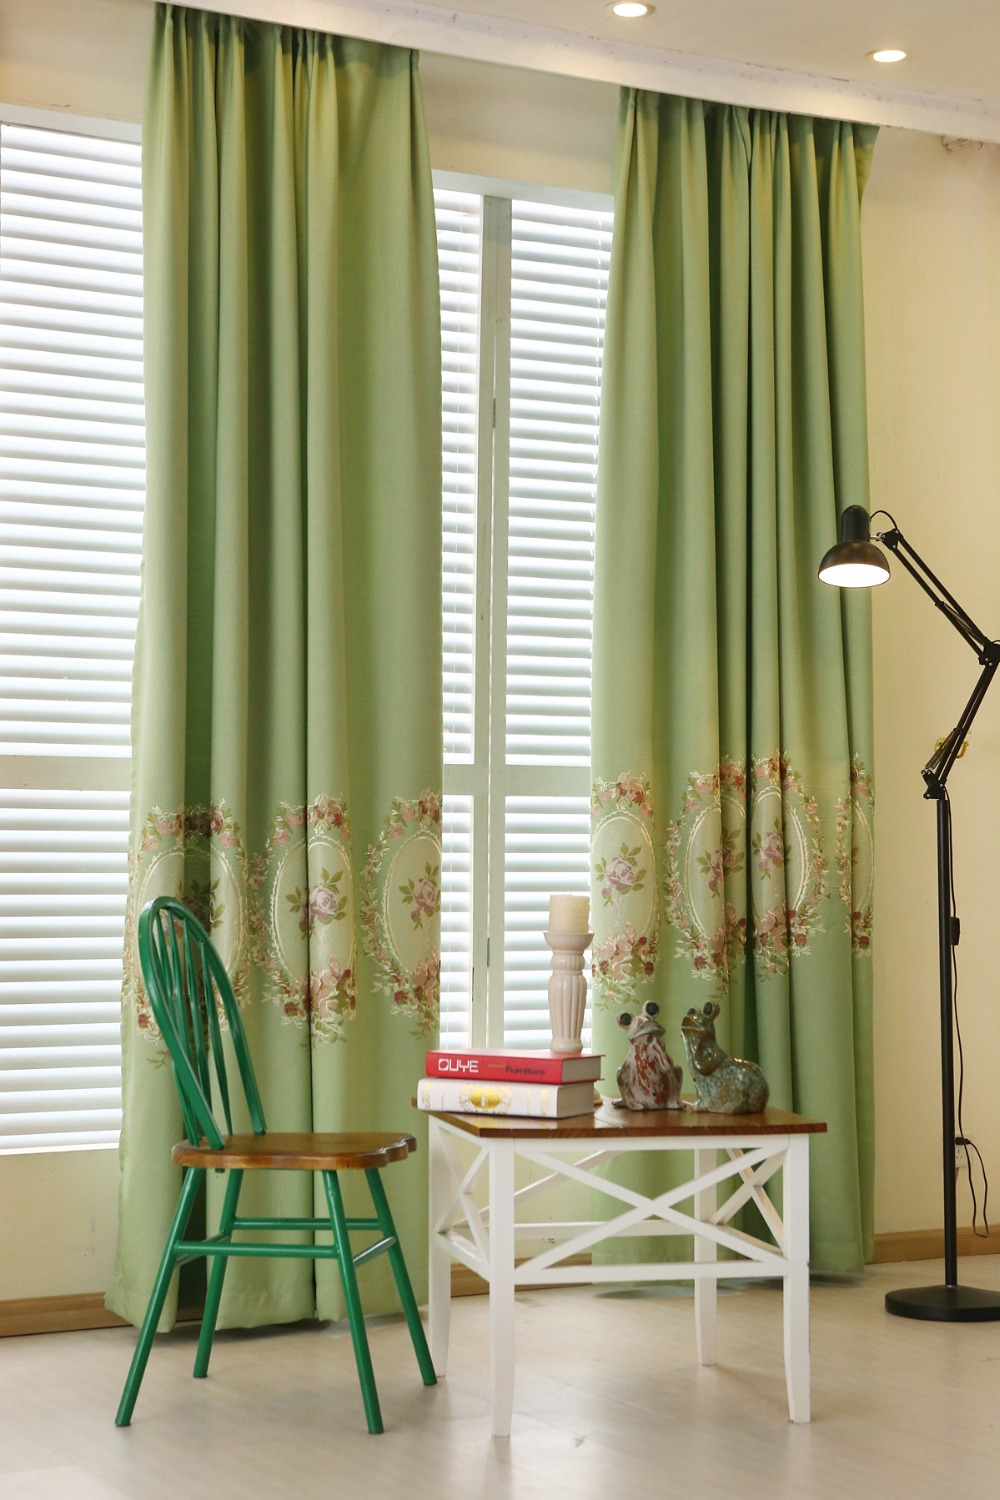 Blue and green floral curtains - High Quality Pastoral Floral Embroidered Window Blackout Curtain For Living Room Bedroom Navy Blue Green 2